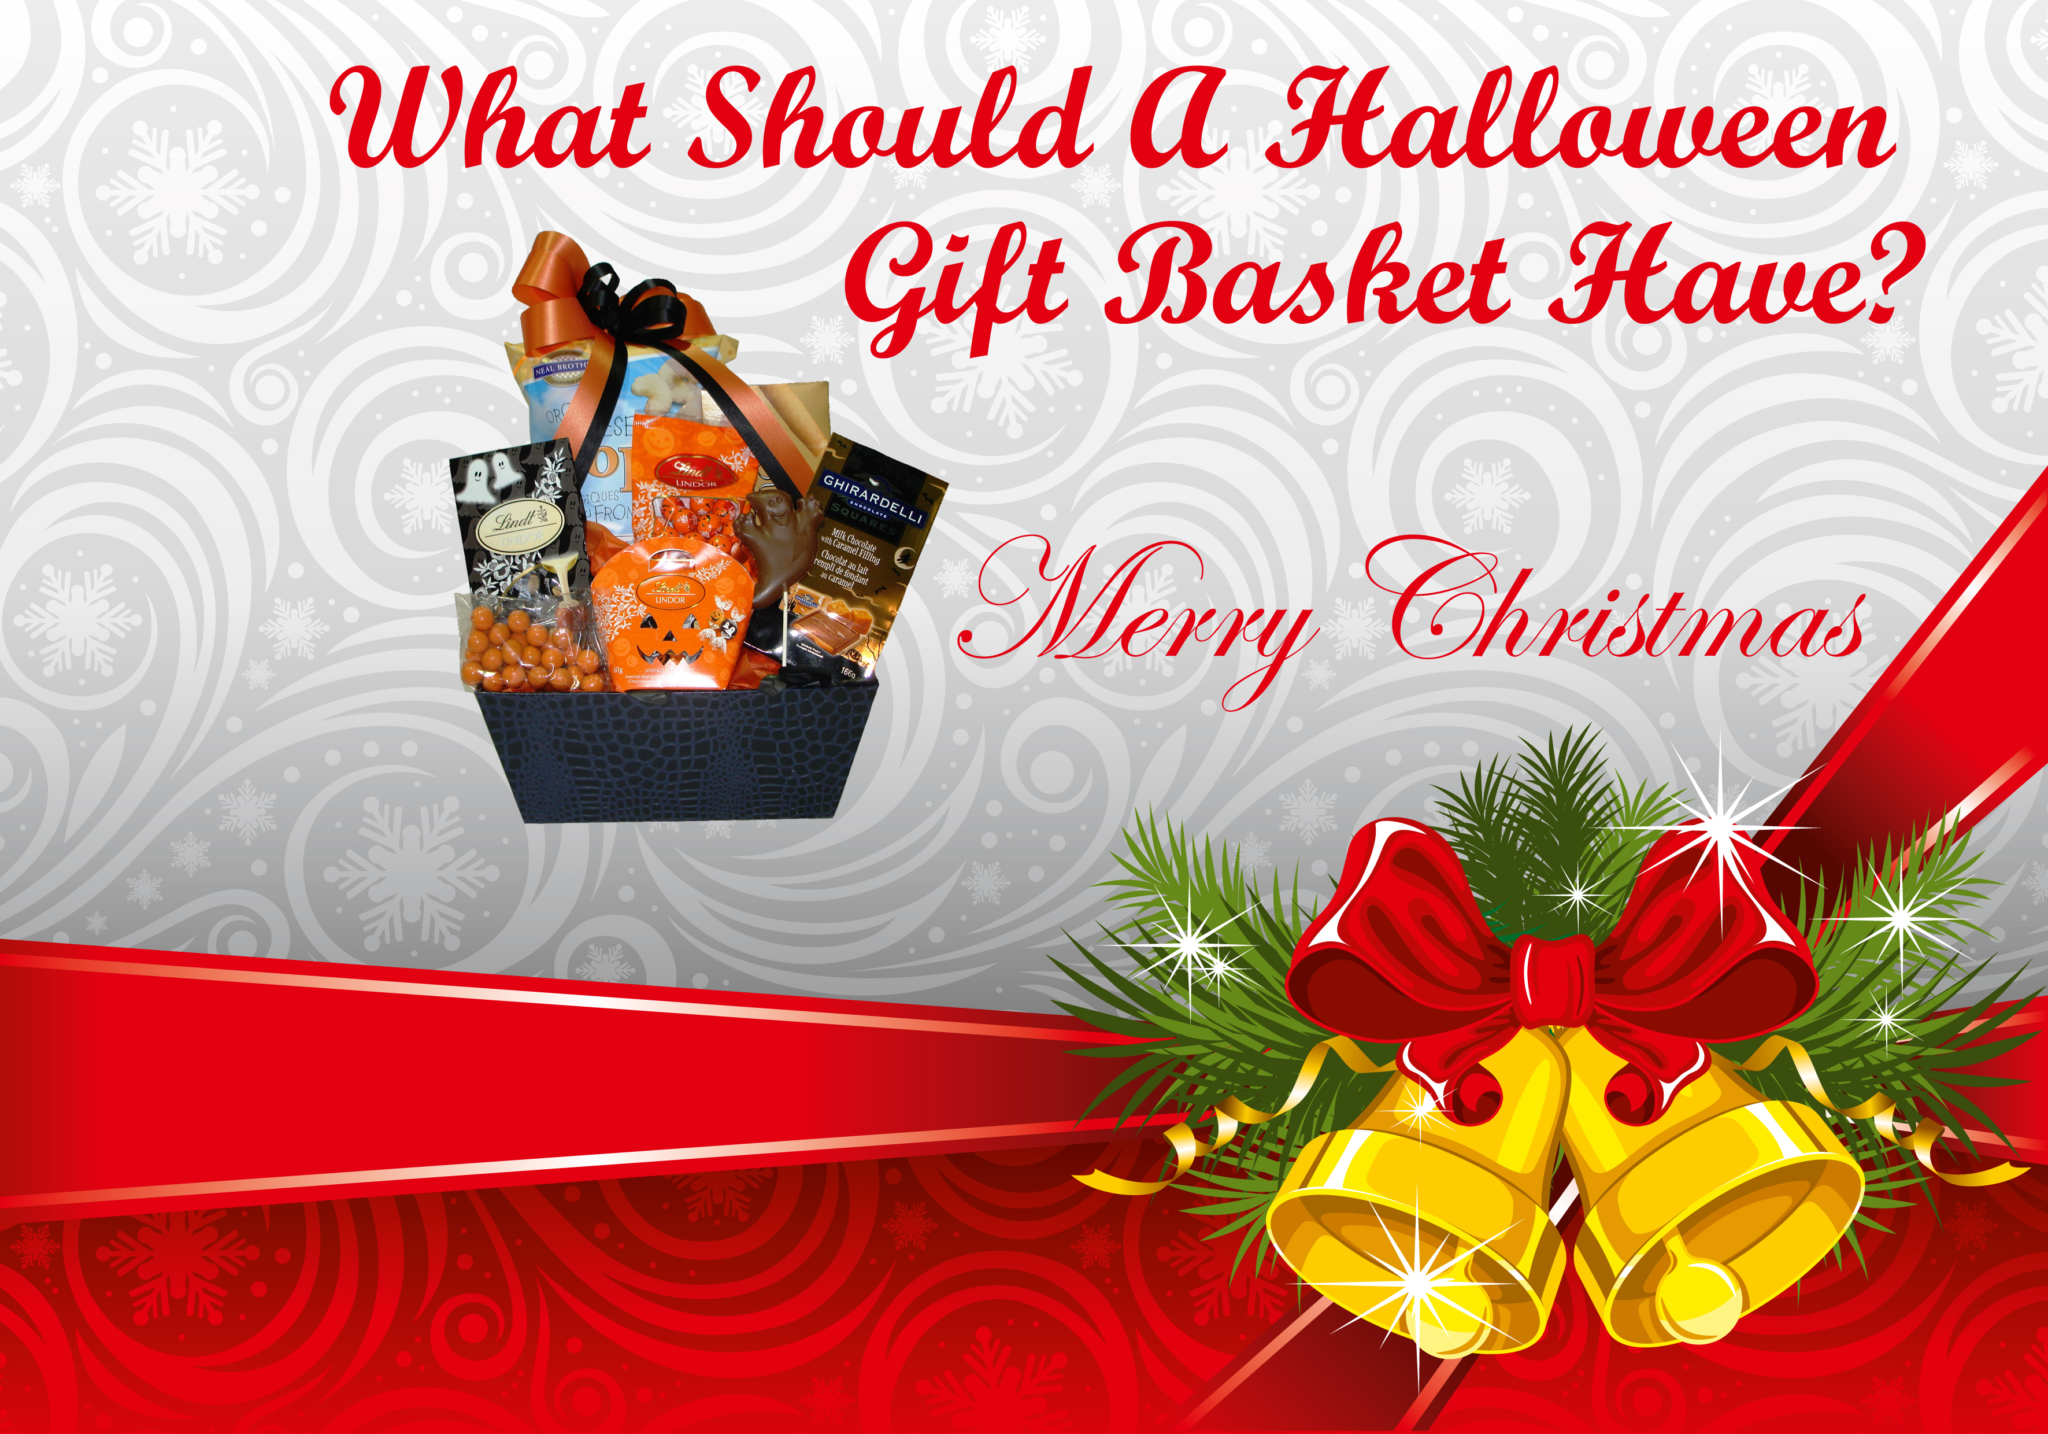 What Should A Halloween Gift Basket Have